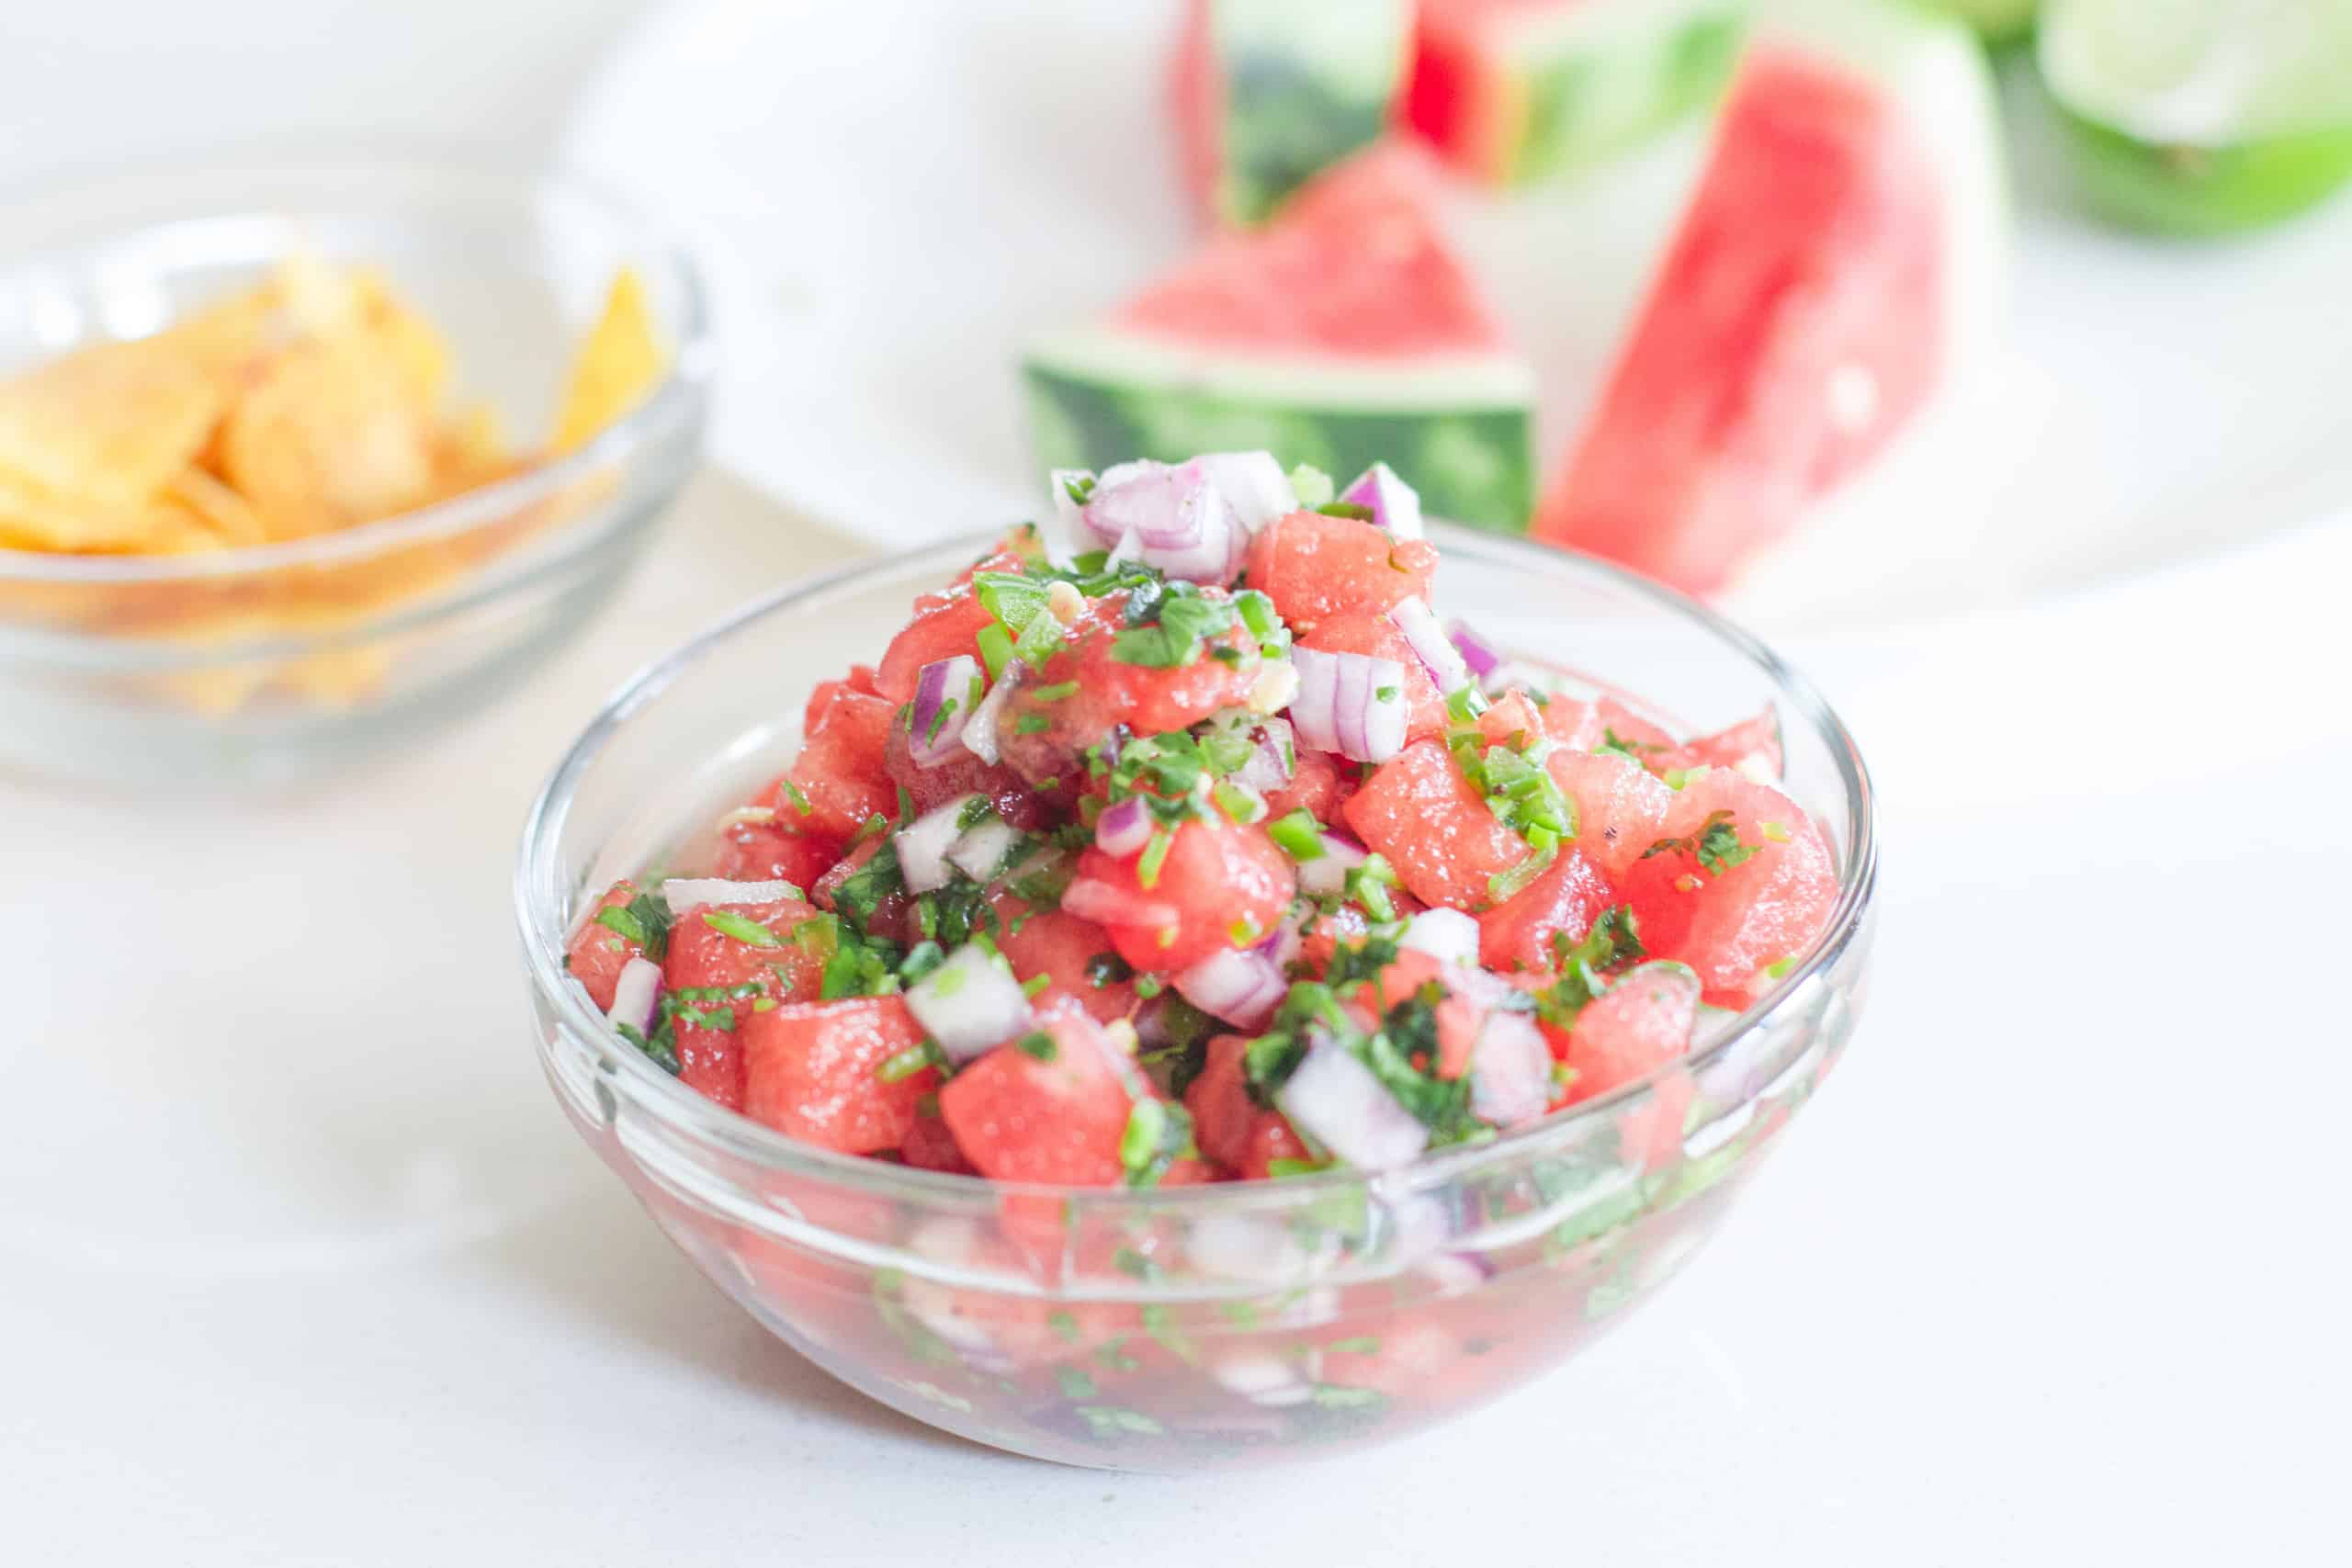 Summer never tasted so good with this refreshing and easy watermelon salsa. Serves great with chips or over grilled seafood and poultry.